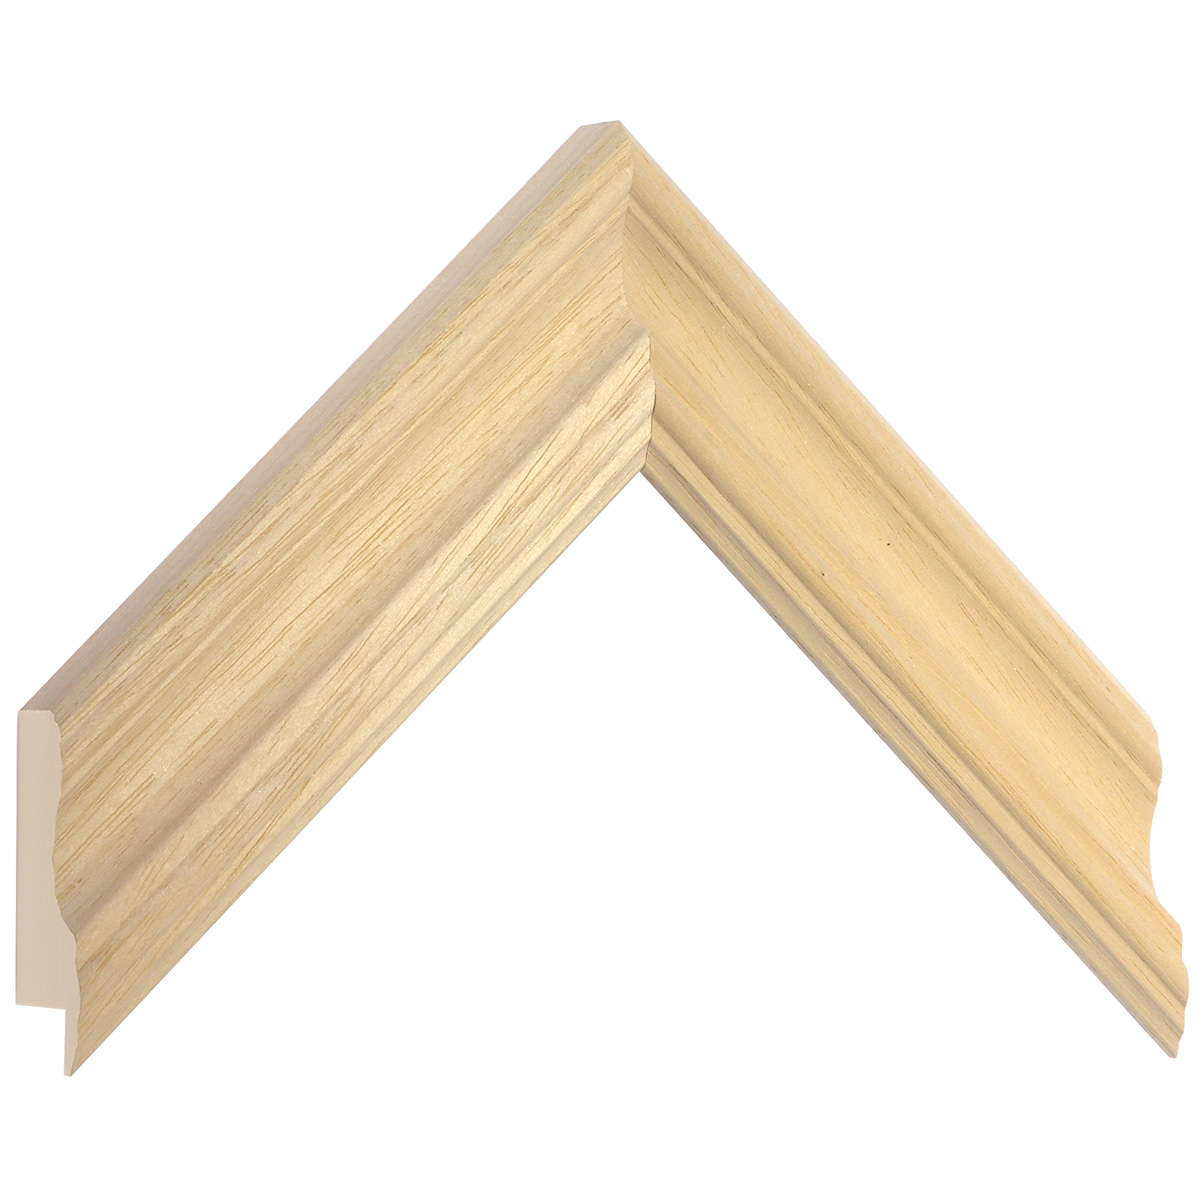 Moulding ayous, width 45mm, bare timber